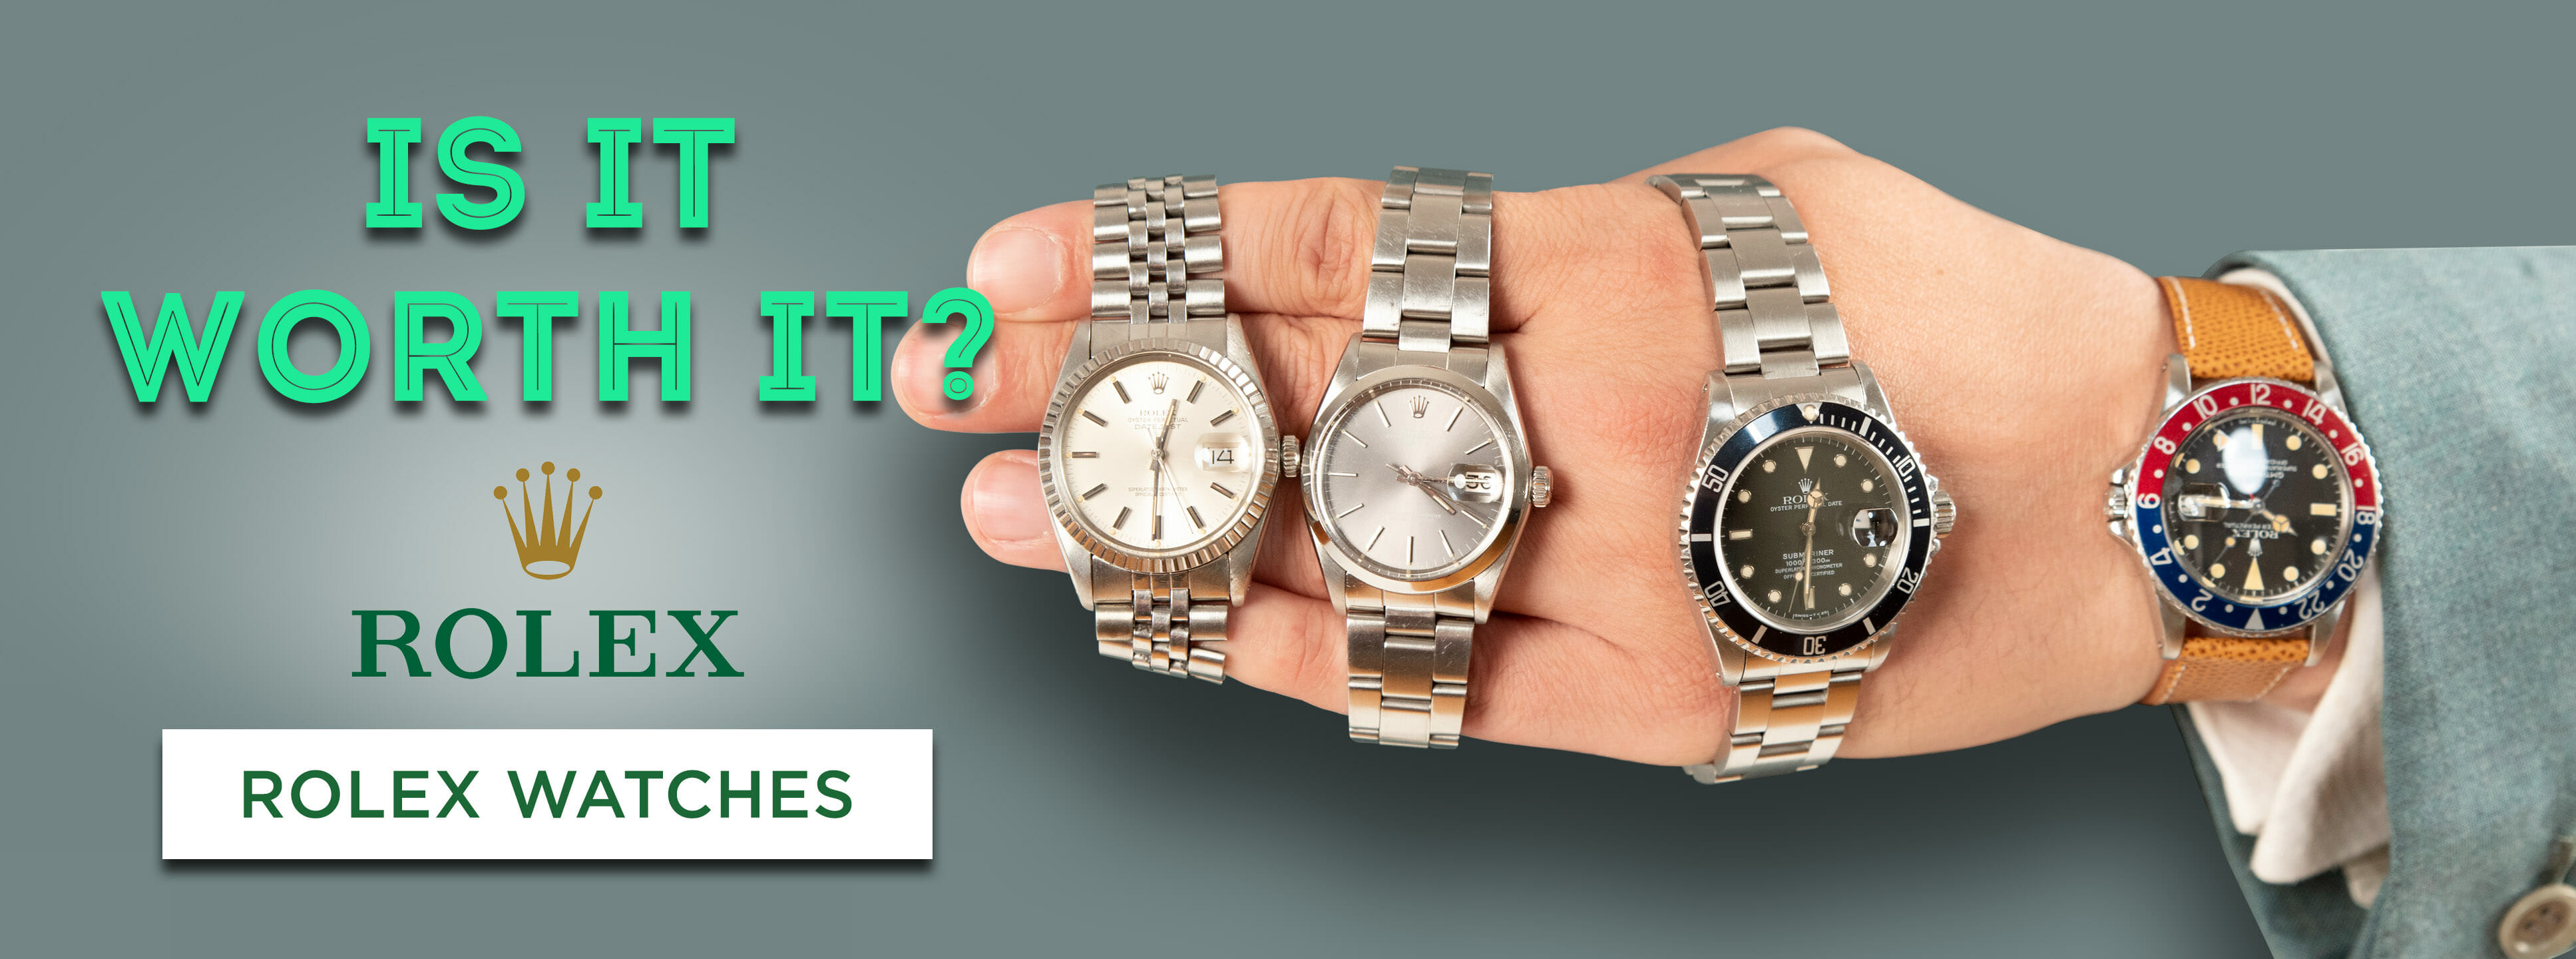 Rolex Watches: Are They Worth It? Men's Watch Review – Datejust, Submariner, GMT Master